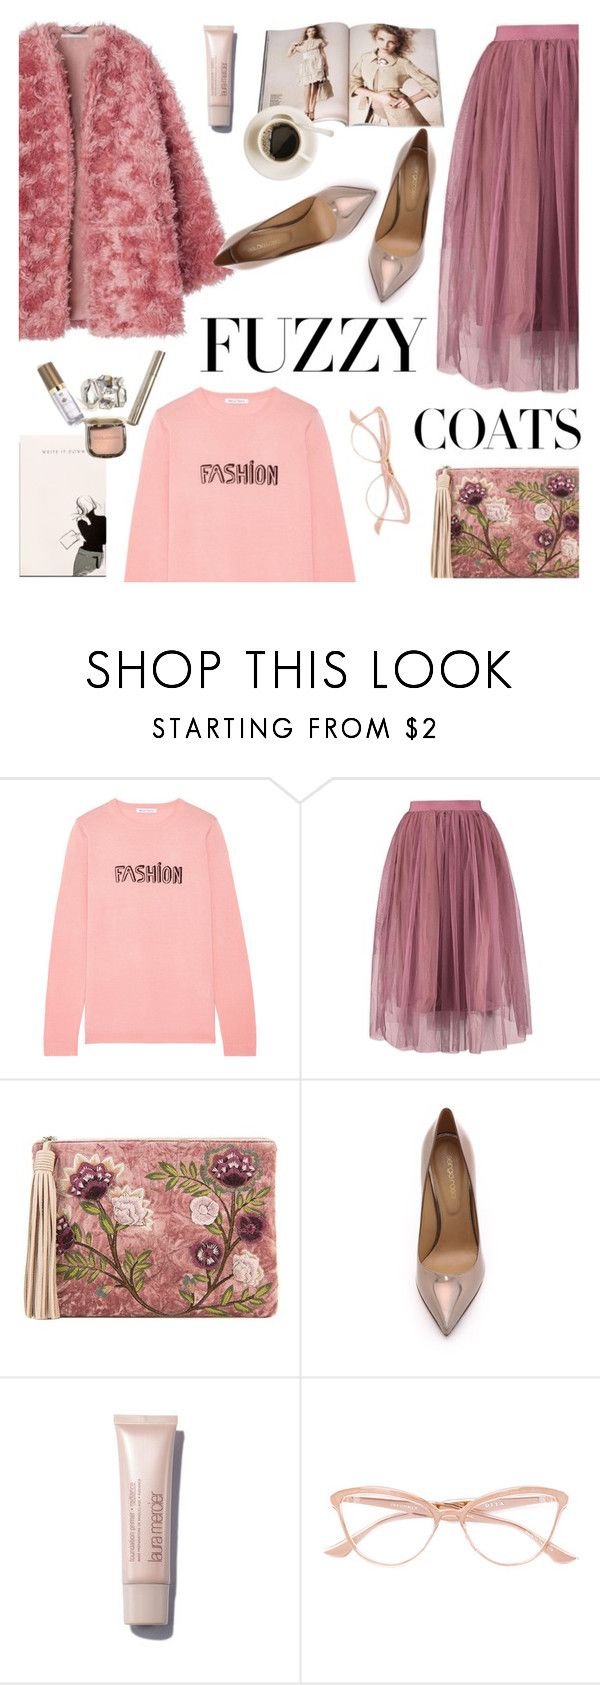 """""""Keep it Cozy: Fuzzy Coats"""" by helenevlacho ❤ liked on Polyvore featuring Bella Freud, Nude, Sam Edelman, Sergio Rossi, Dita, Garance Doré, contestentry and fuzzycoats"""